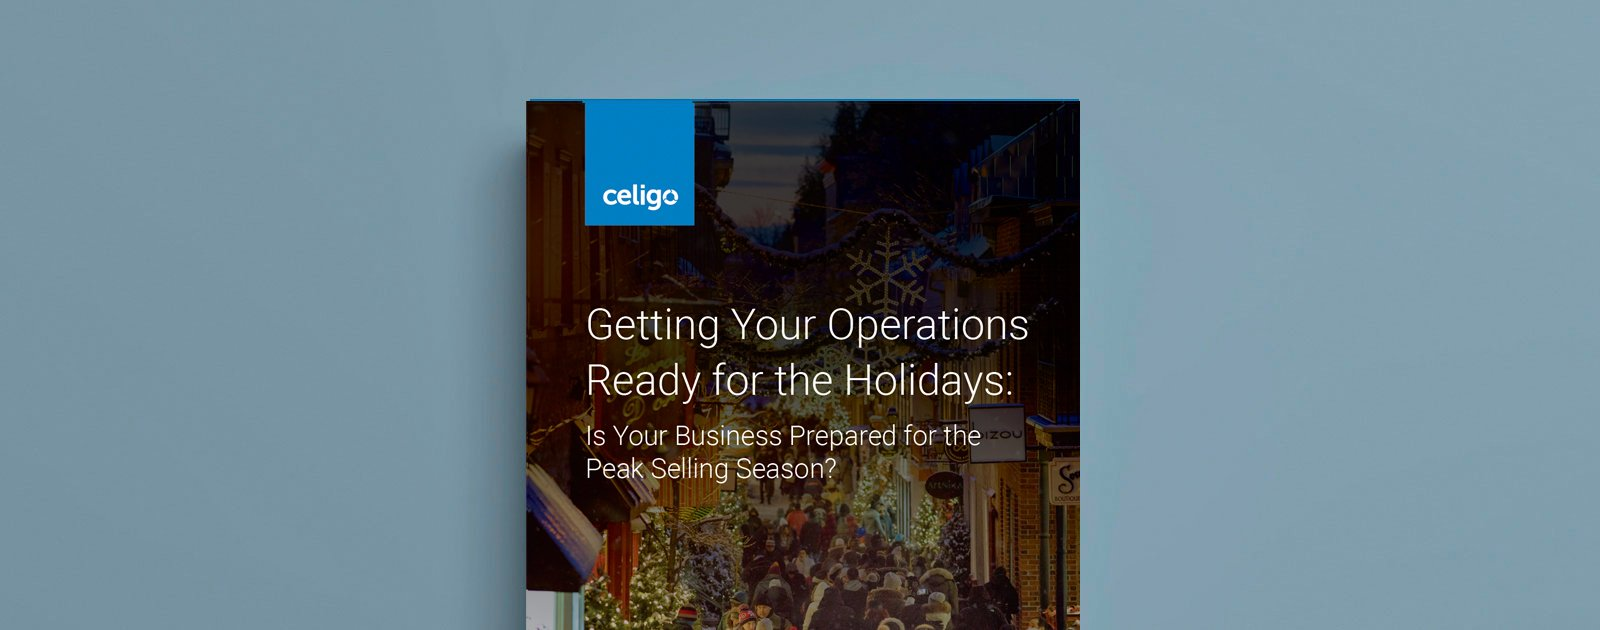 Getting Your Operations Ready for the Holidays